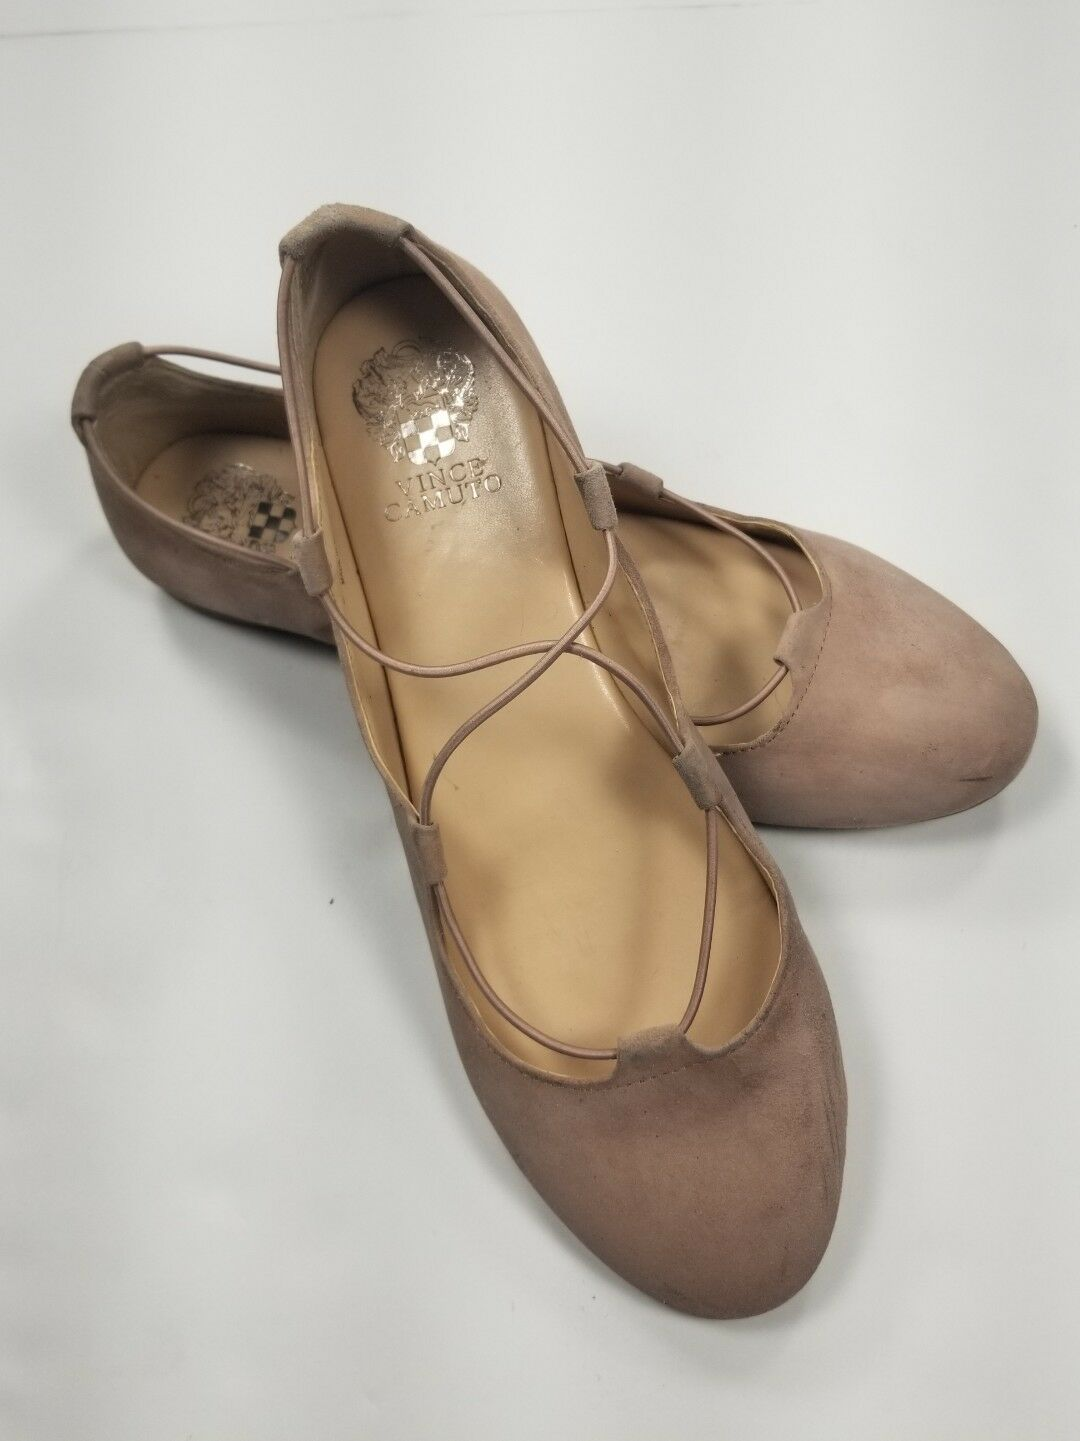 VINCE CAMUTO Ballet Flats Sz  10M/40  Womens Nude